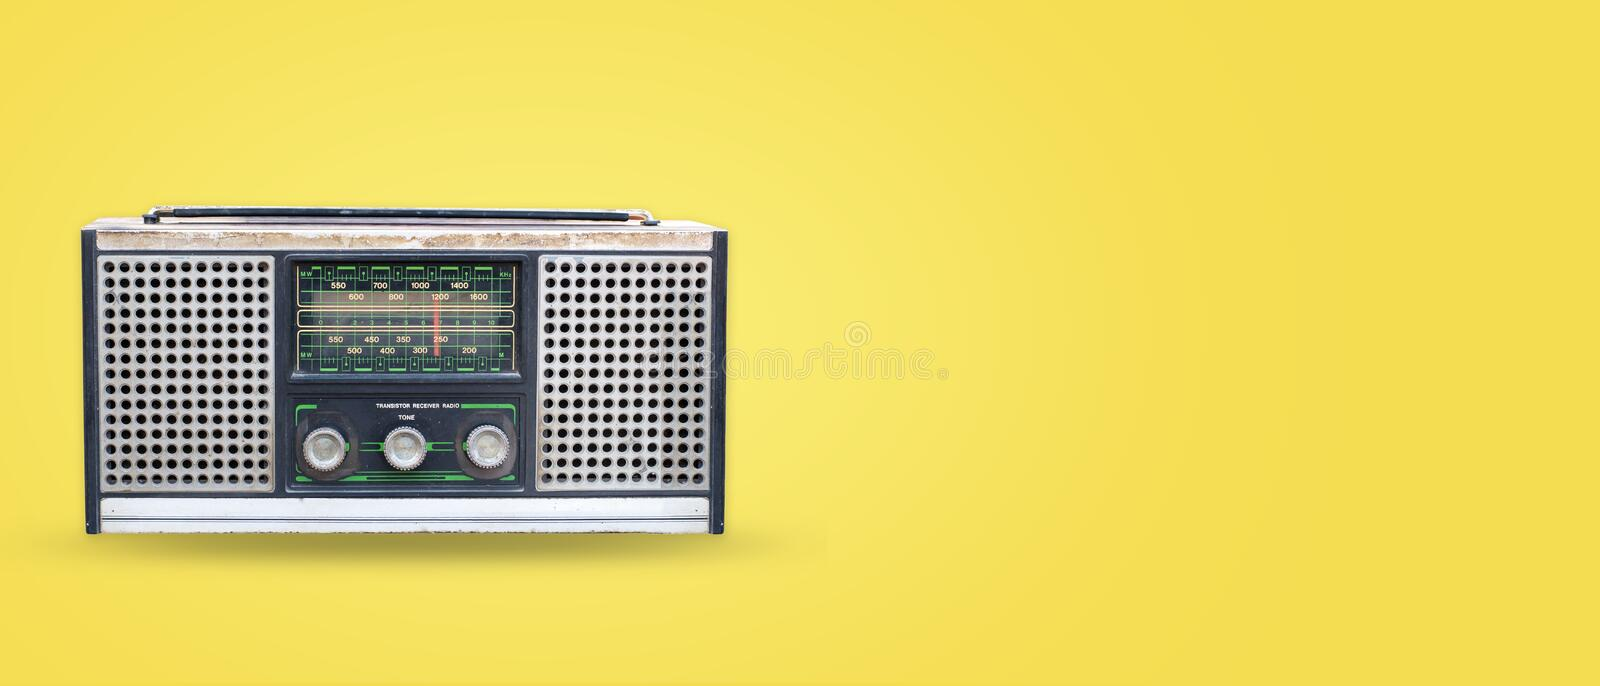 Vintage radio on pastel color background. Retro technology. flat lay, top view hero header. vintage color styles stock photos